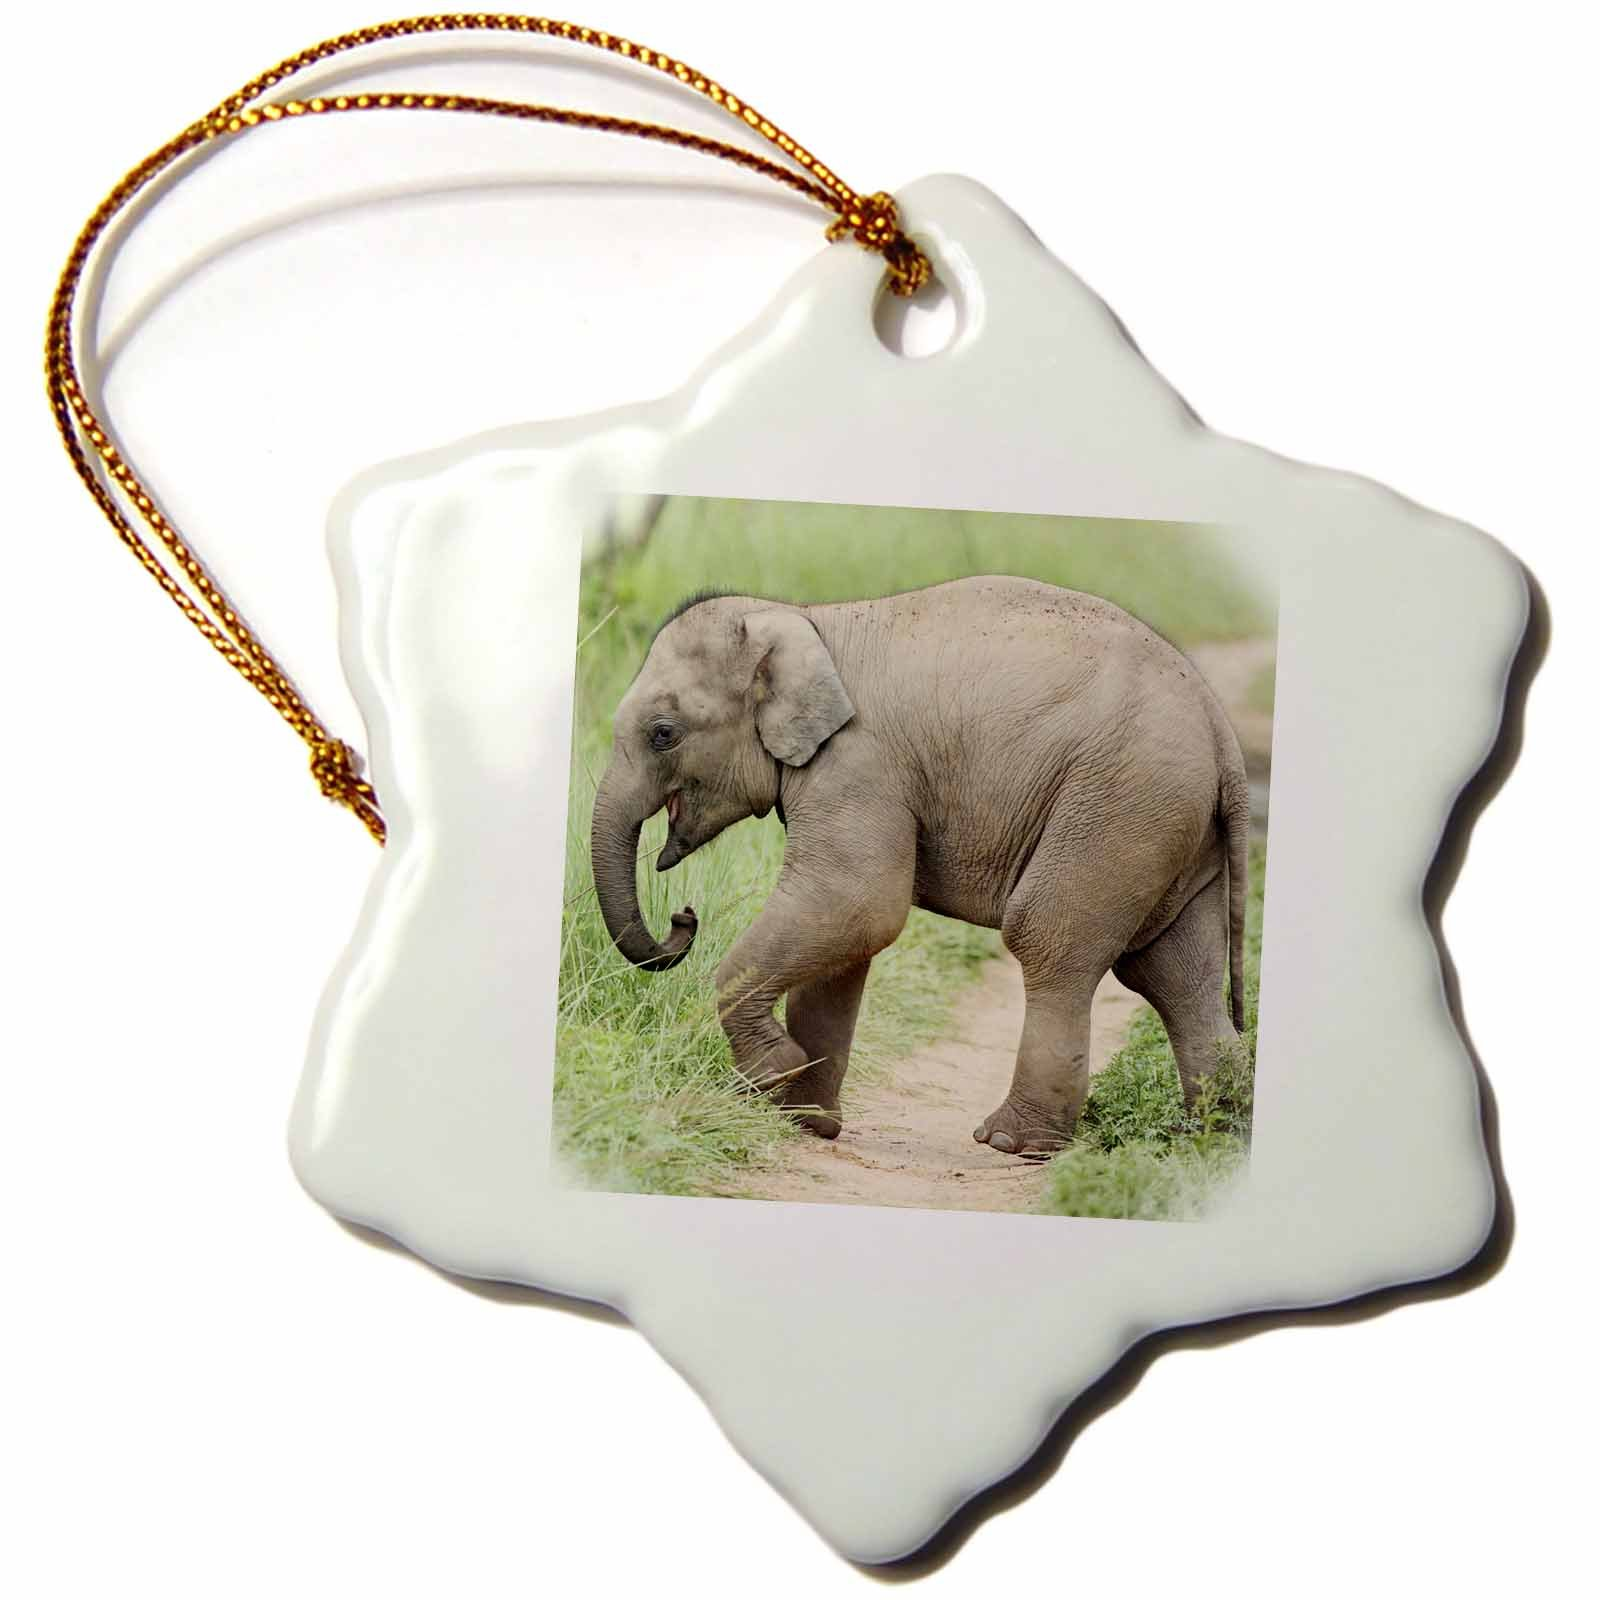 3dRose orn_71687_1 Baby Elephant Mother Corbett National Park India Jagdeep Rajput Snowflake Decorative Hanging Ornament, Porcelain, 3-Inch